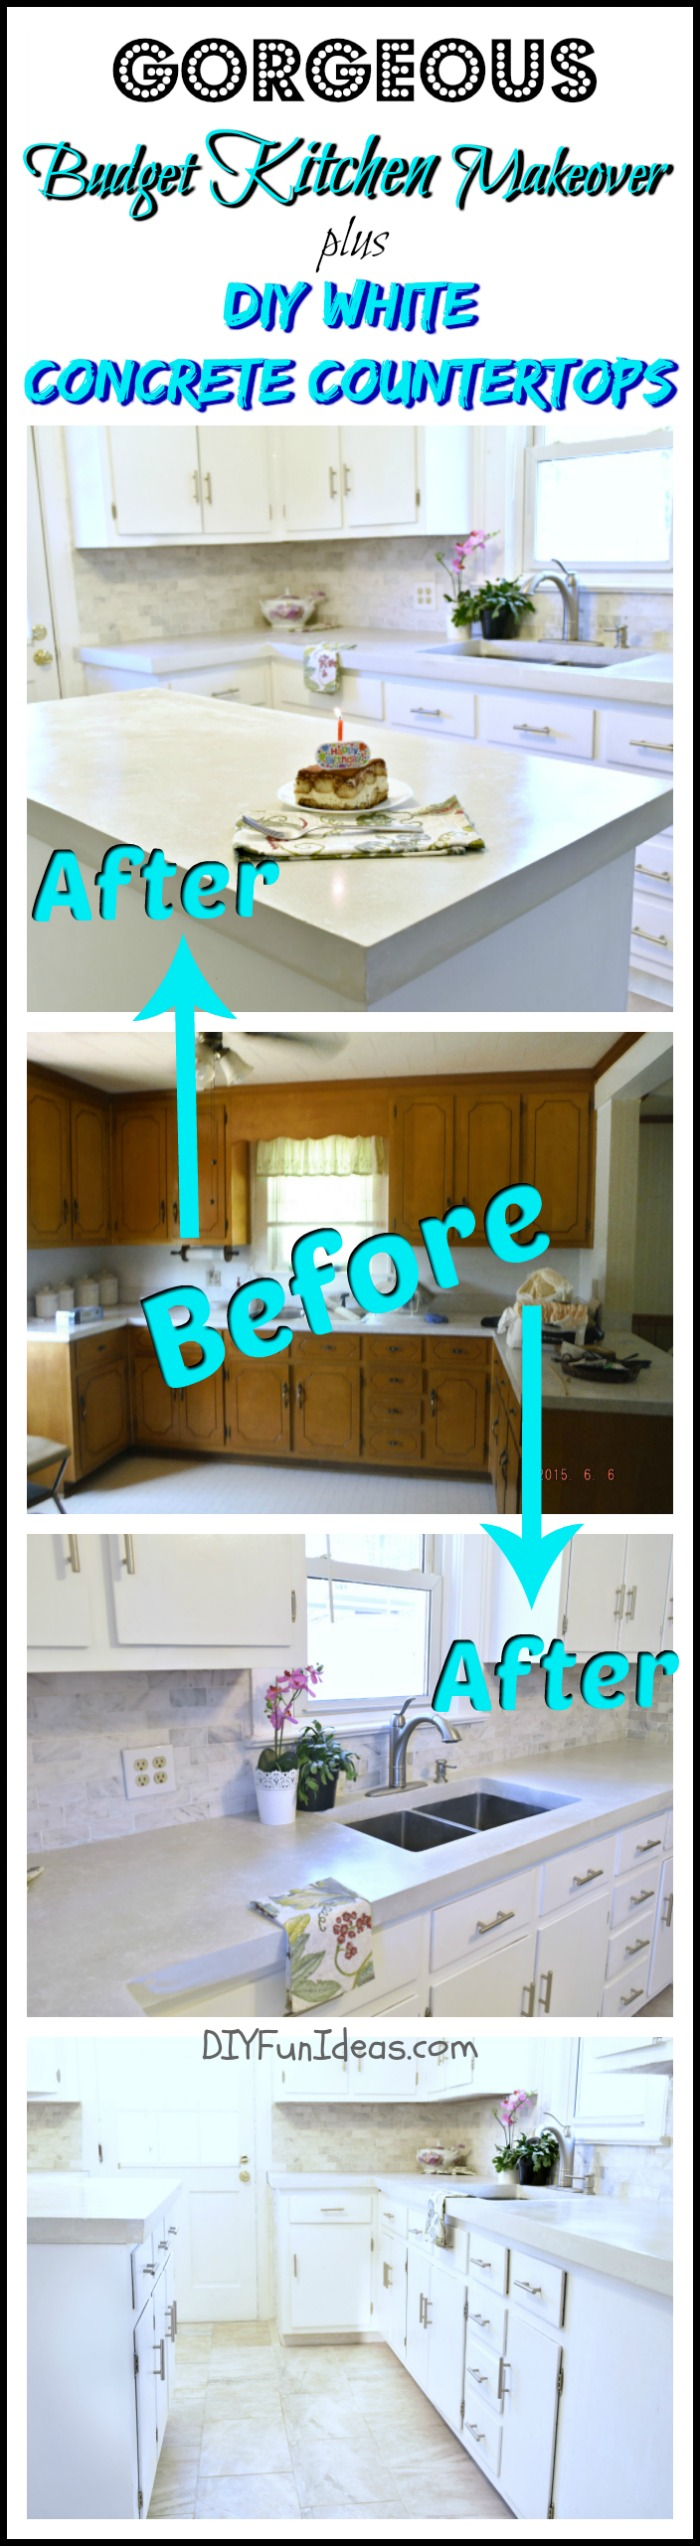 Kitchen Countertop Options Diy : ... DEAD GORGEOUS DIY KITCHEN MAKEOVER with DIY WHITE CONCRETE COUNTERTOPS